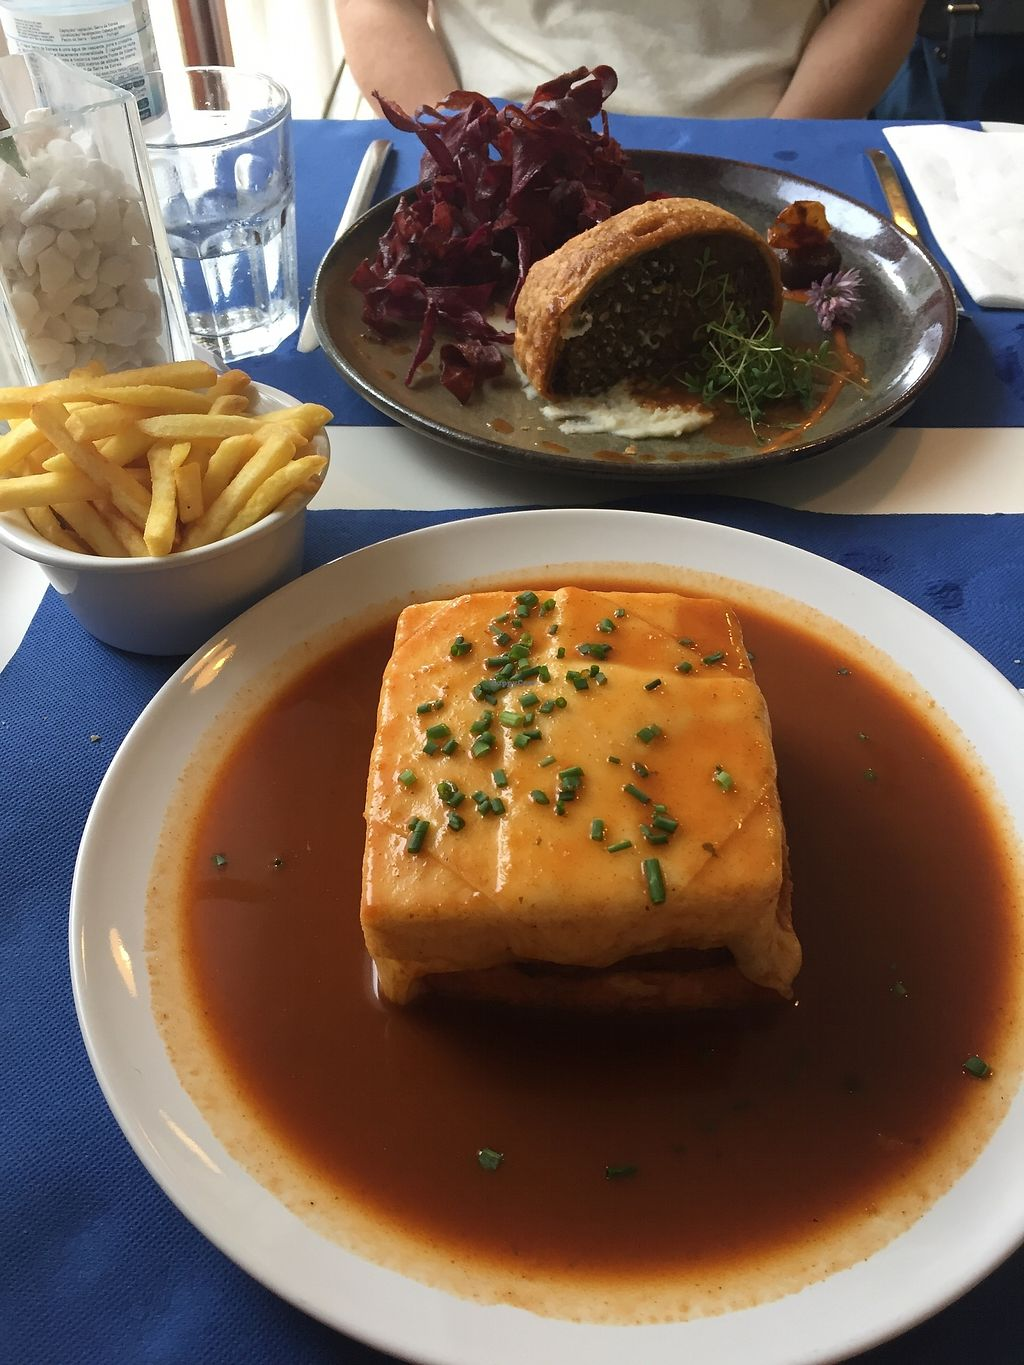 """Photo of Lupin Restaurante Vegetariano  by <a href=""""/members/profile/JennieRDS"""">JennieRDS</a> <br/>Francesinha, fries and lentil Wellington <br/> July 10, 2017  - <a href='/contact/abuse/image/56547/278673'>Report</a>"""